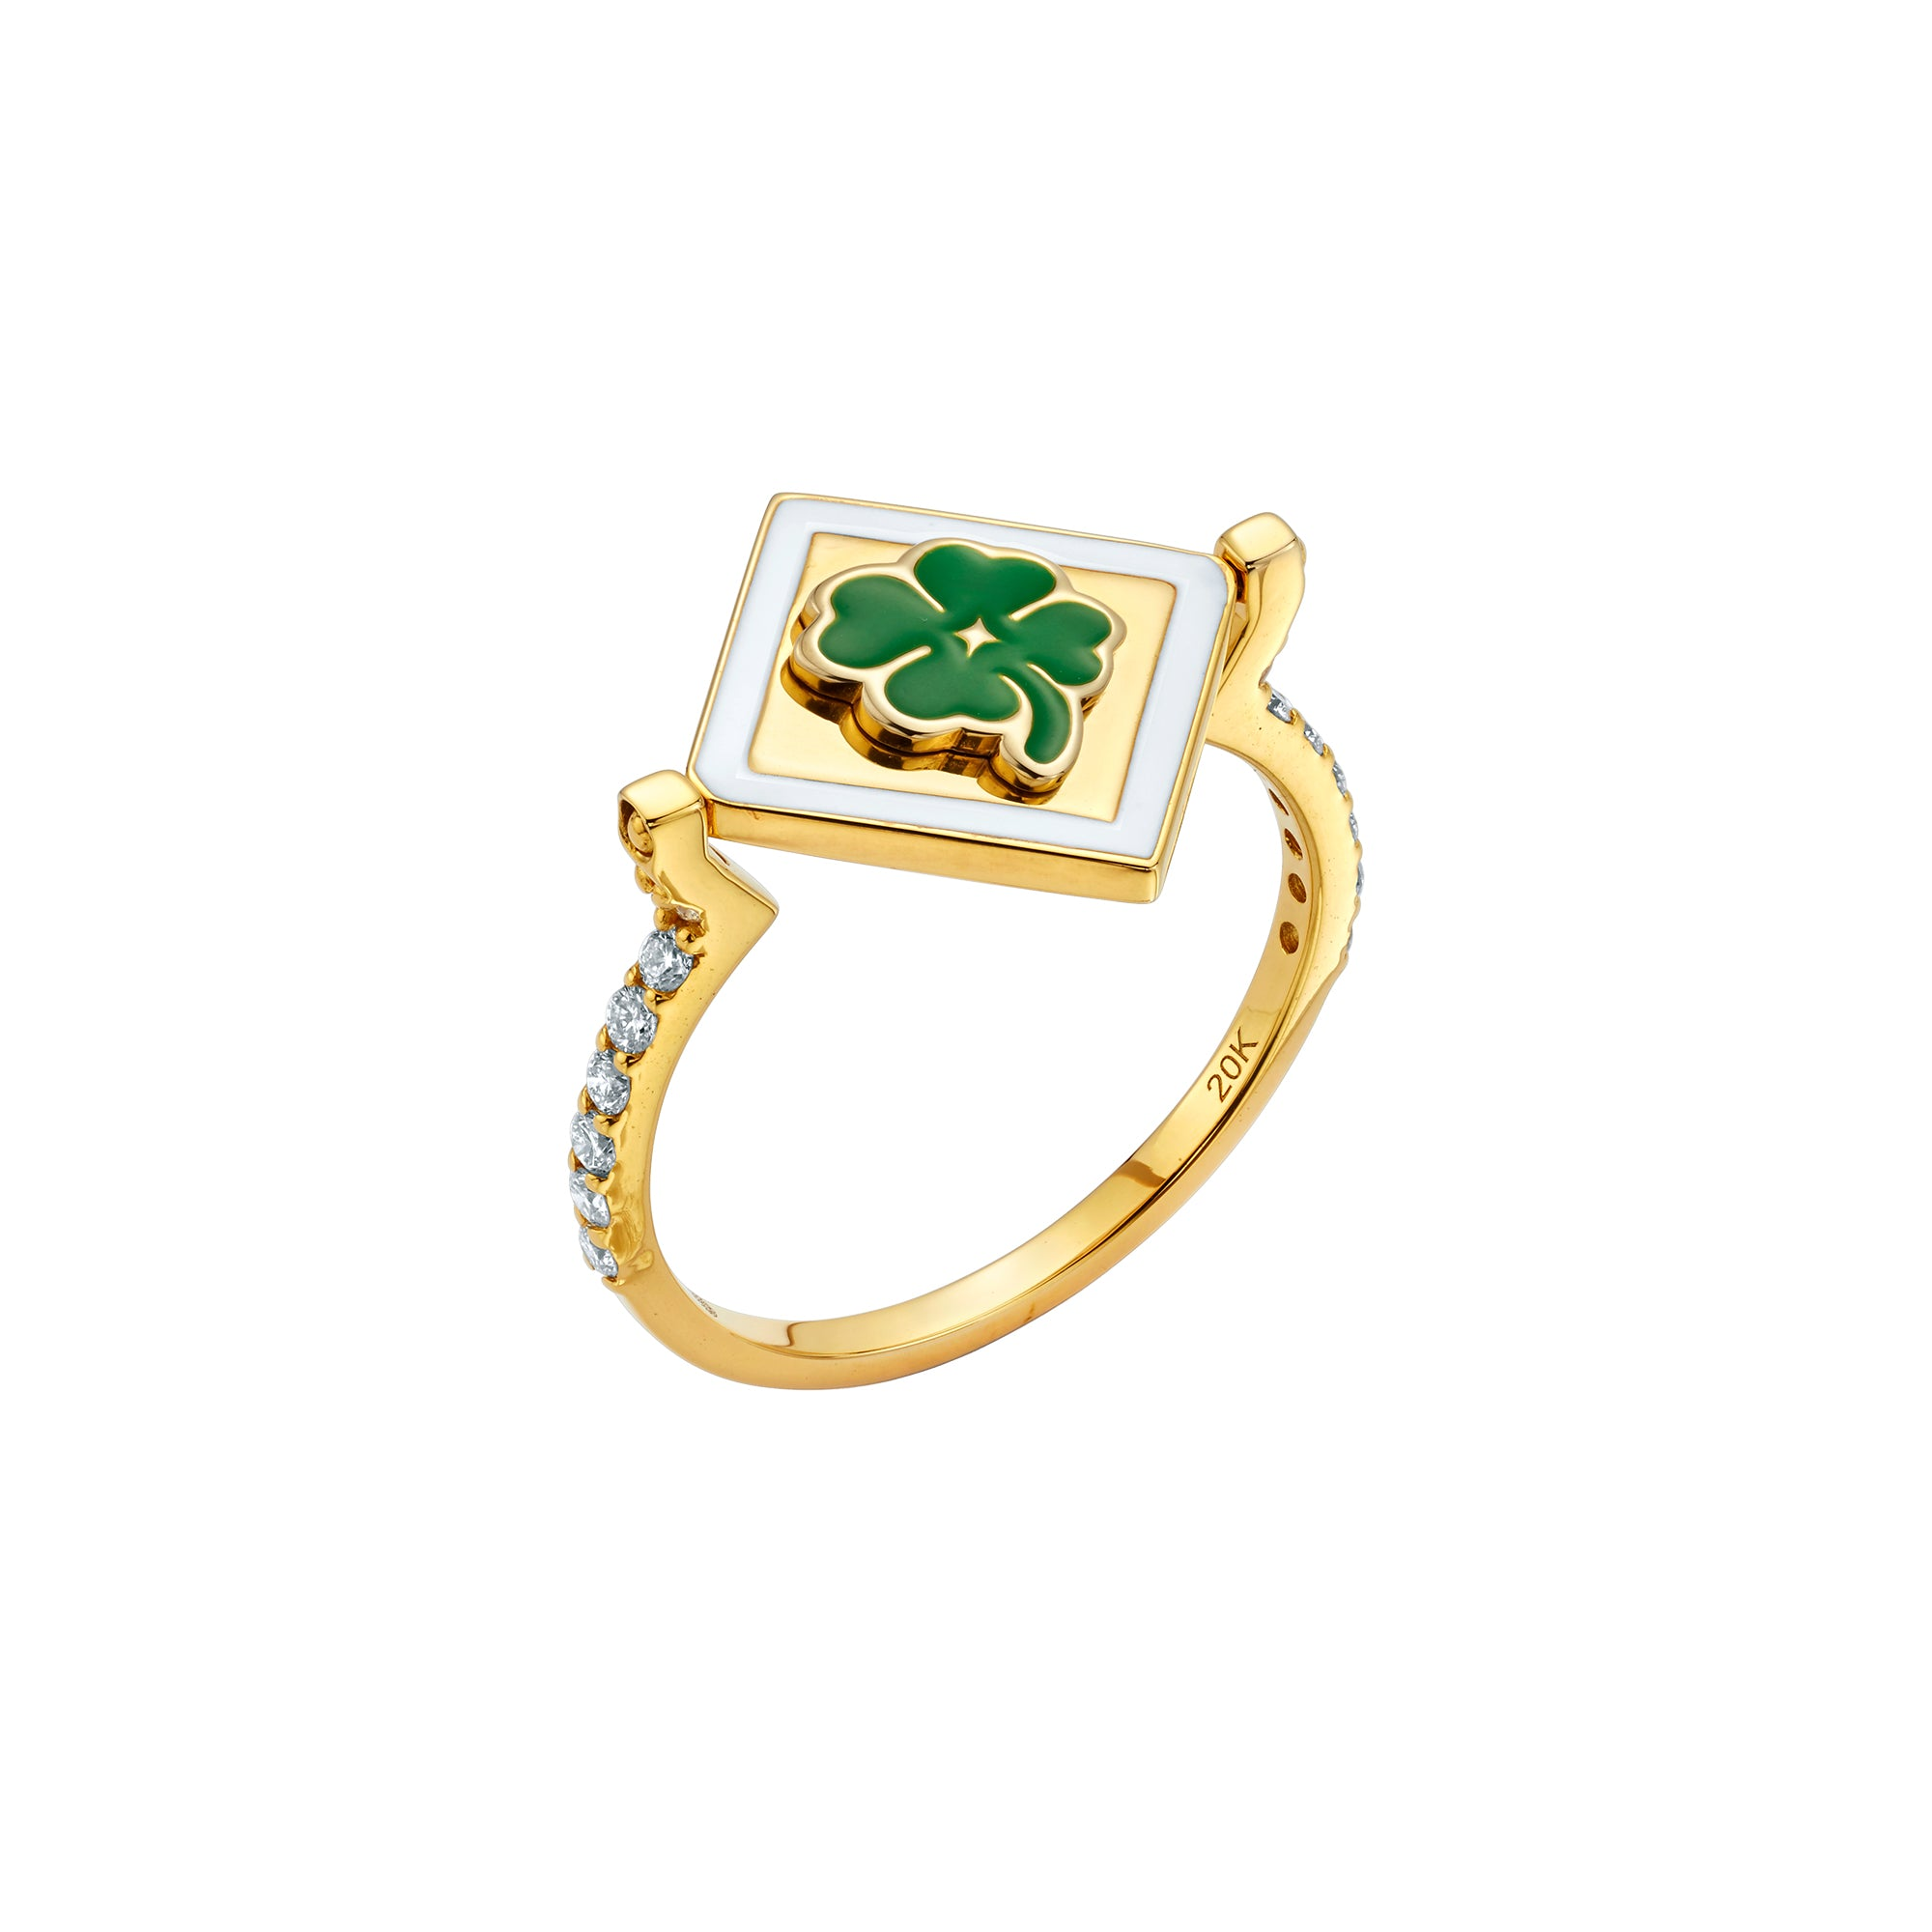 Gold Enamel White Diamond Flip Ring by Buddha Mama for Broken English Jewelry